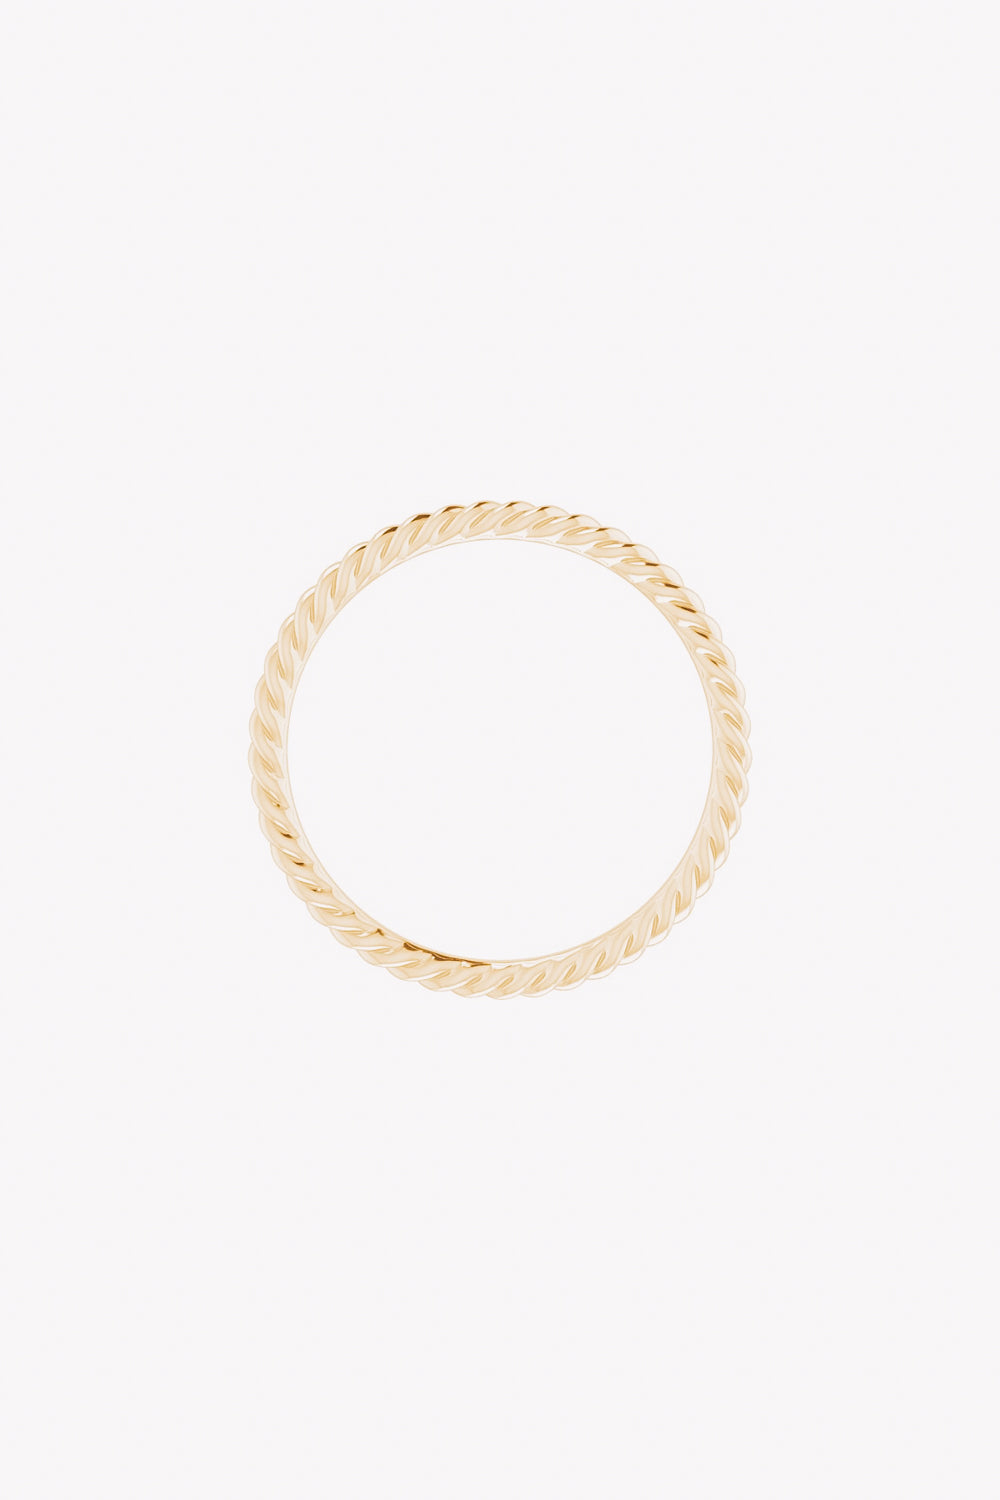 1.5 mm Skinny Rope Band | 14K Gold | Janna Conner